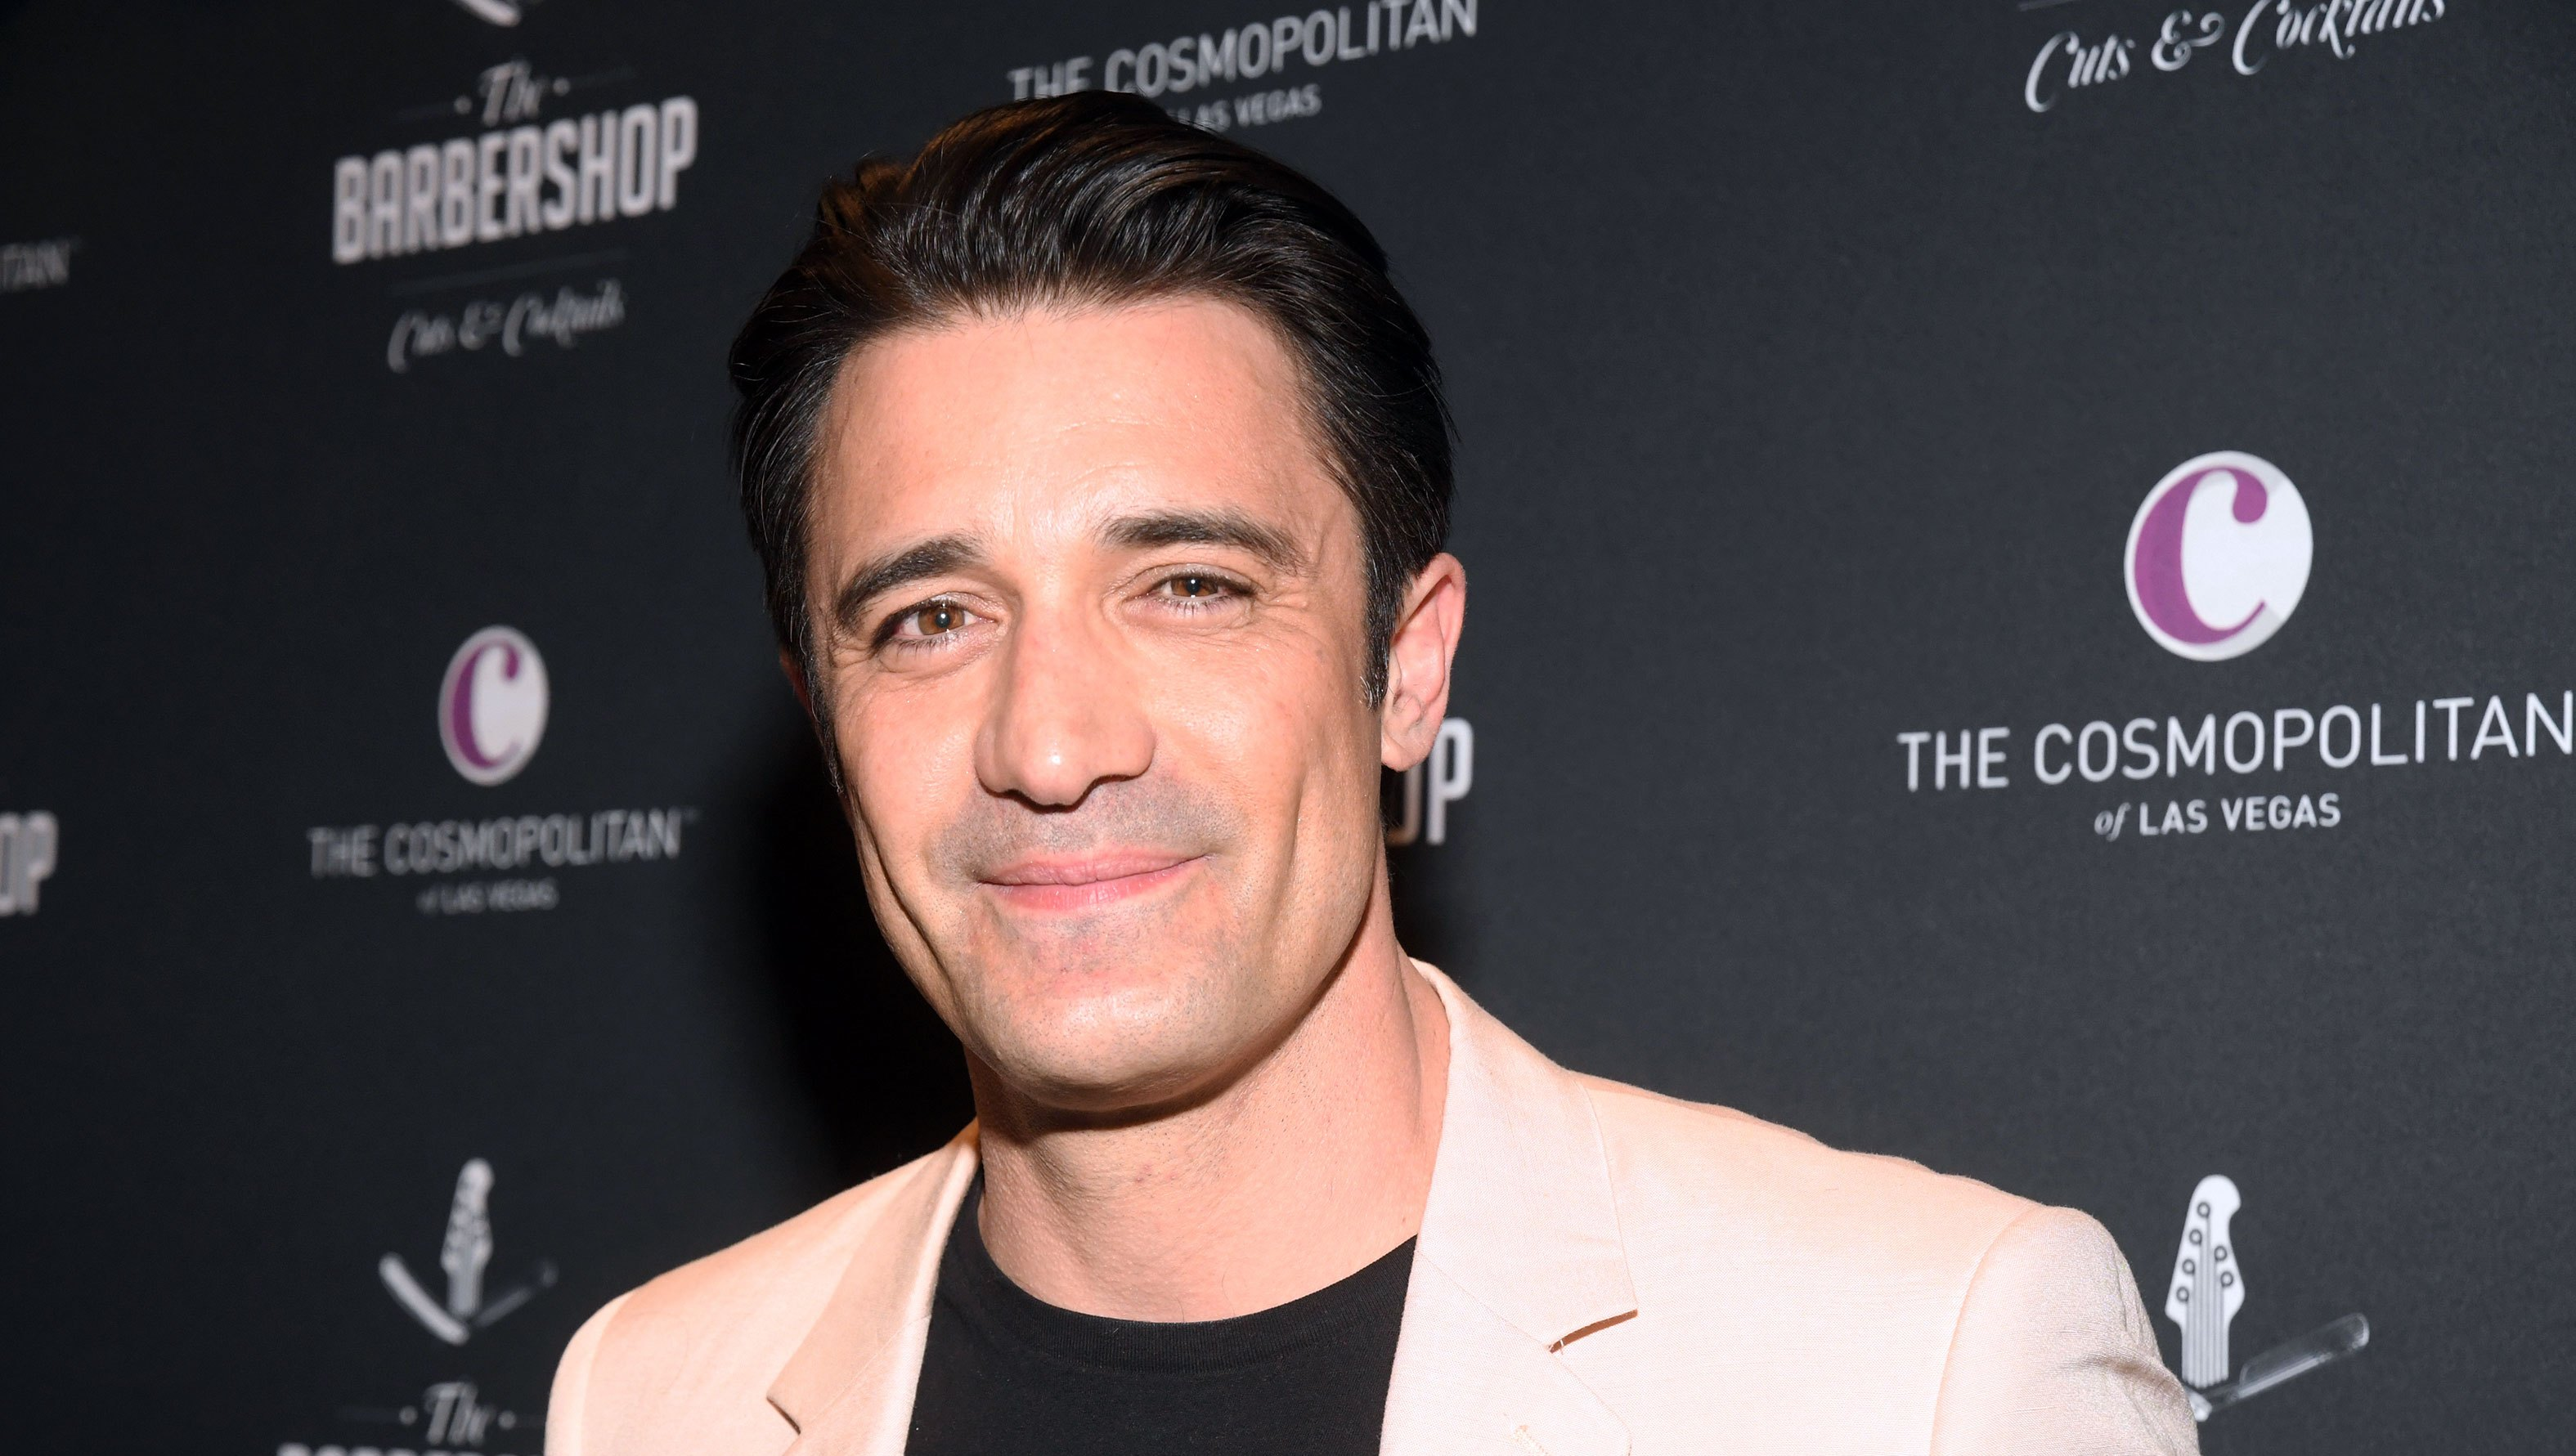 Gilles Marini Says He's 'Not going to throw any rocks' at Lori Loughlin